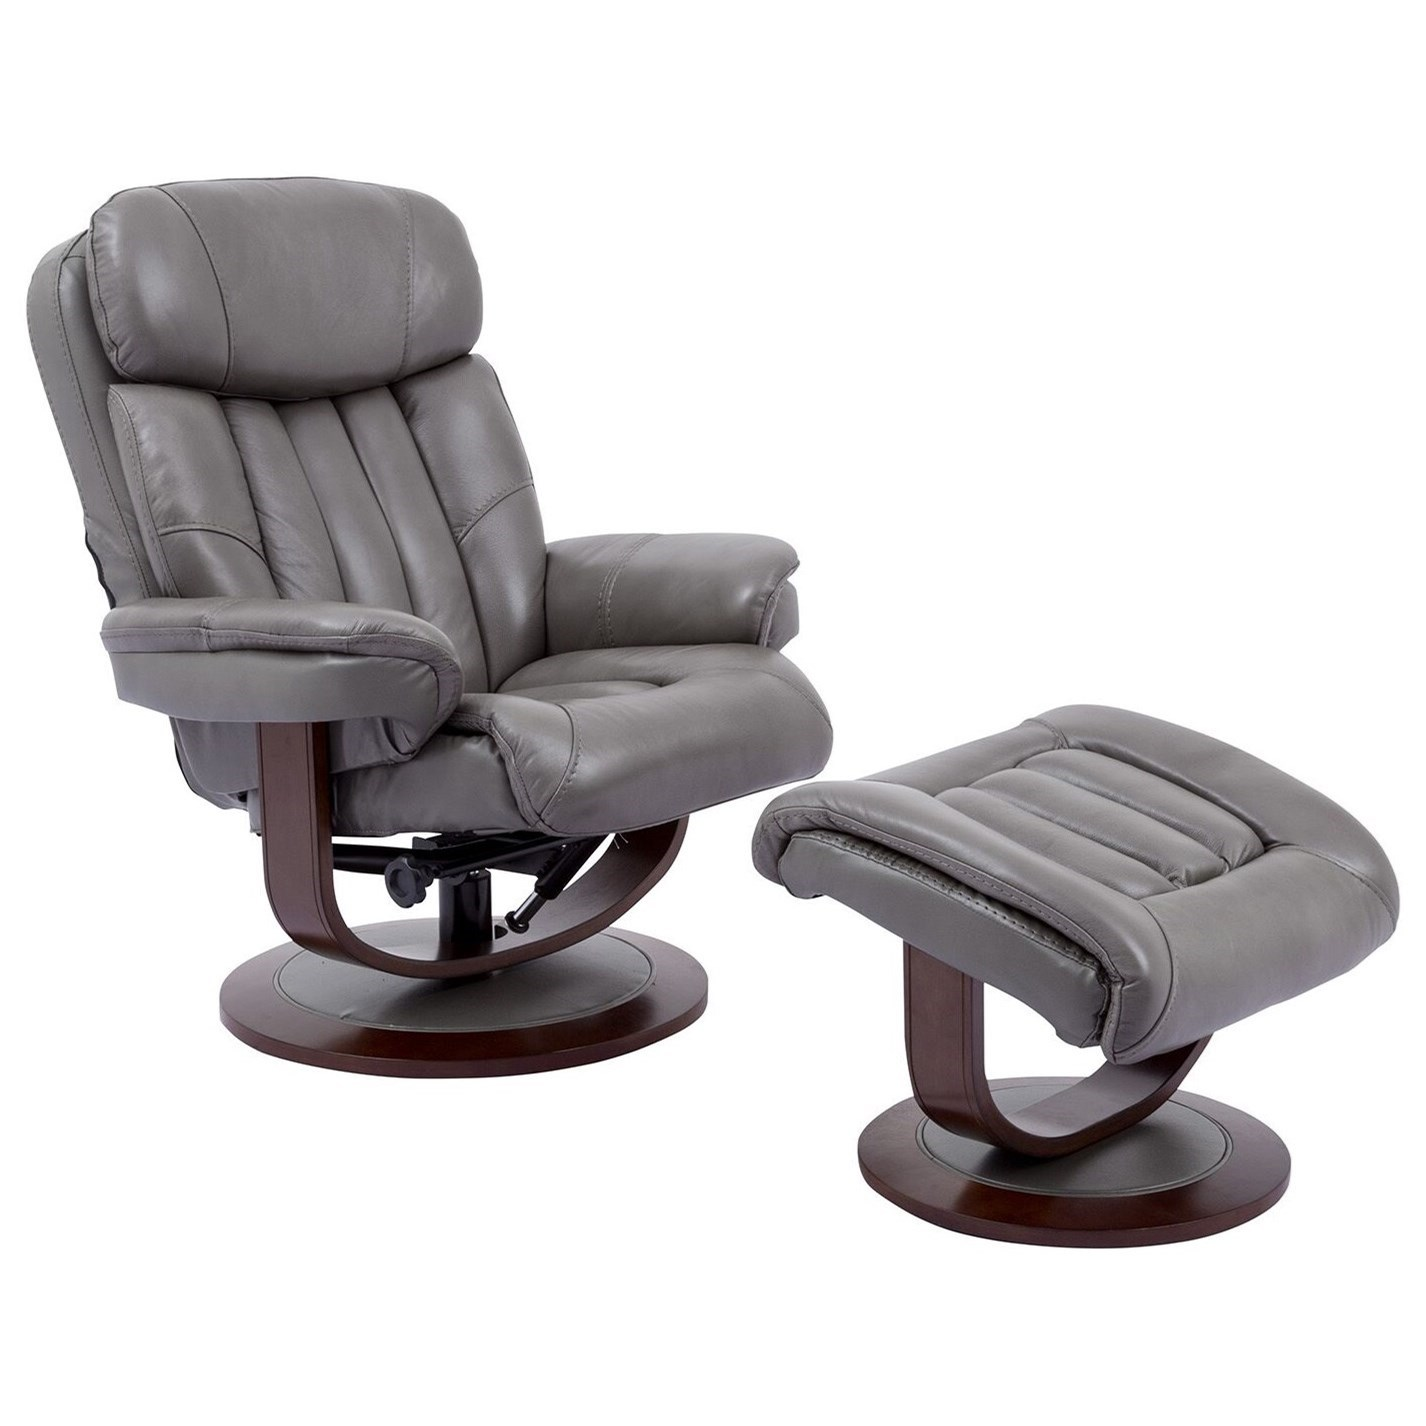 Prince Swivel Recliner & Ottoman by Parker Living at Lindy's Furniture Company